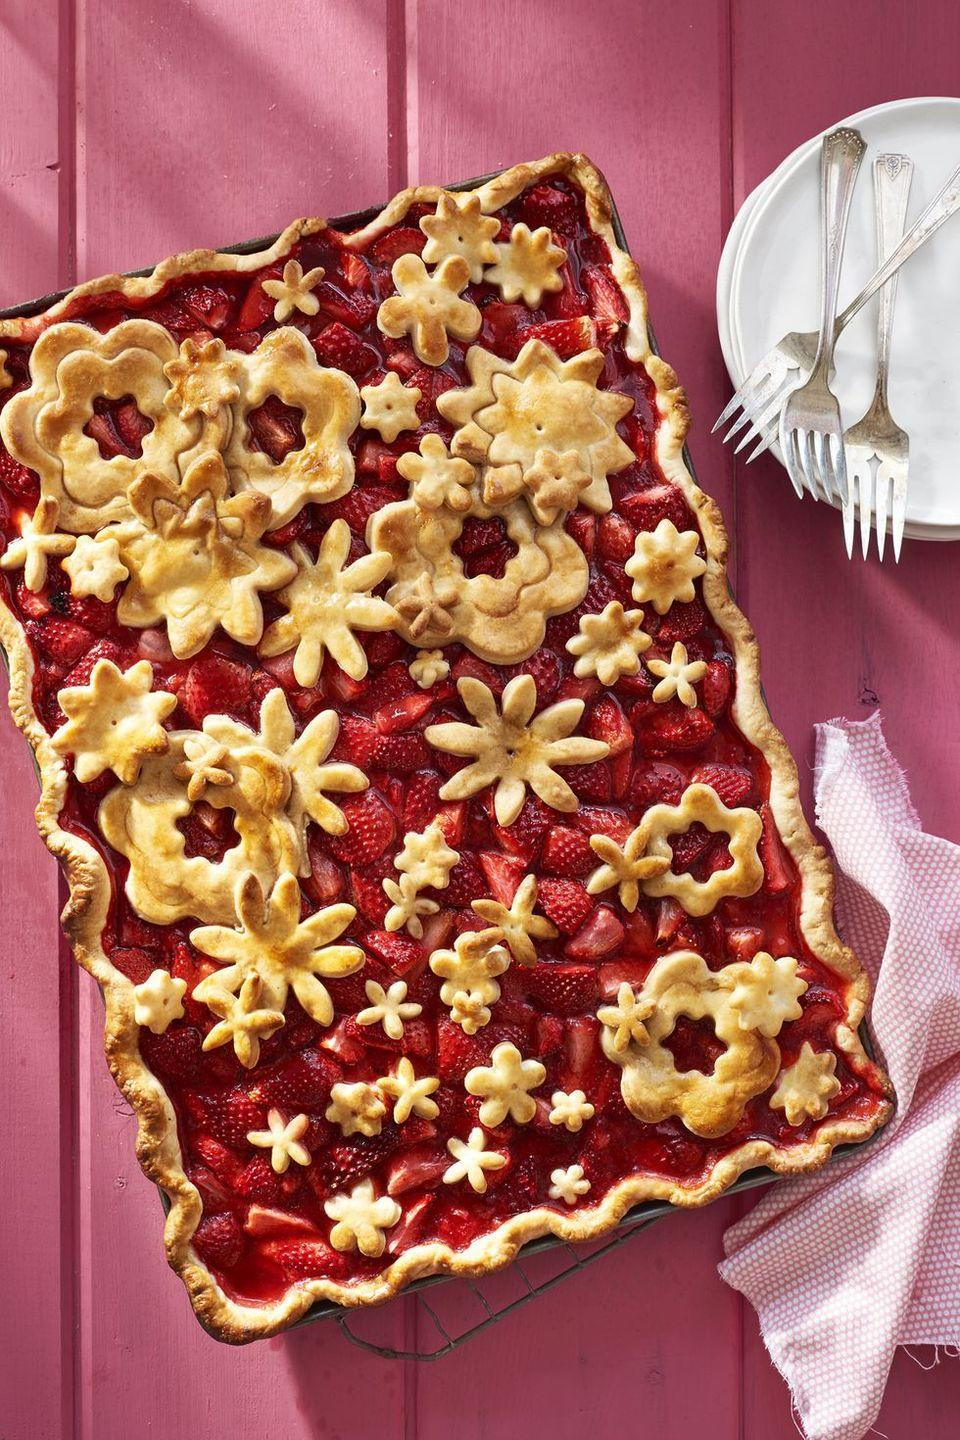 "<p>Serve this stunning pie with a scoop (or two!) of vanilla ice cream.</p><p><strong><a href=""https://www.countryliving.com/food-drinks/recipes/a41978/strawberry-slab-pie-recipe/"" rel=""nofollow noopener"" target=""_blank"" data-ylk=""slk:Get the recipe"" class=""link rapid-noclick-resp"">Get the recipe</a>.</strong></p><p><a class=""link rapid-noclick-resp"" href=""https://www.amazon.com/Nordic-Ware-Natural-Aluminum-Commercial/dp/B00INRW7GC/?tag=syn-yahoo-20&ascsubtag=%5Bartid%7C10050.g.4238%5Bsrc%7Cyahoo-us"" rel=""nofollow noopener"" target=""_blank"" data-ylk=""slk:SHOP JELLY ROLL PANS"">SHOP JELLY ROLL PANS</a></p>"